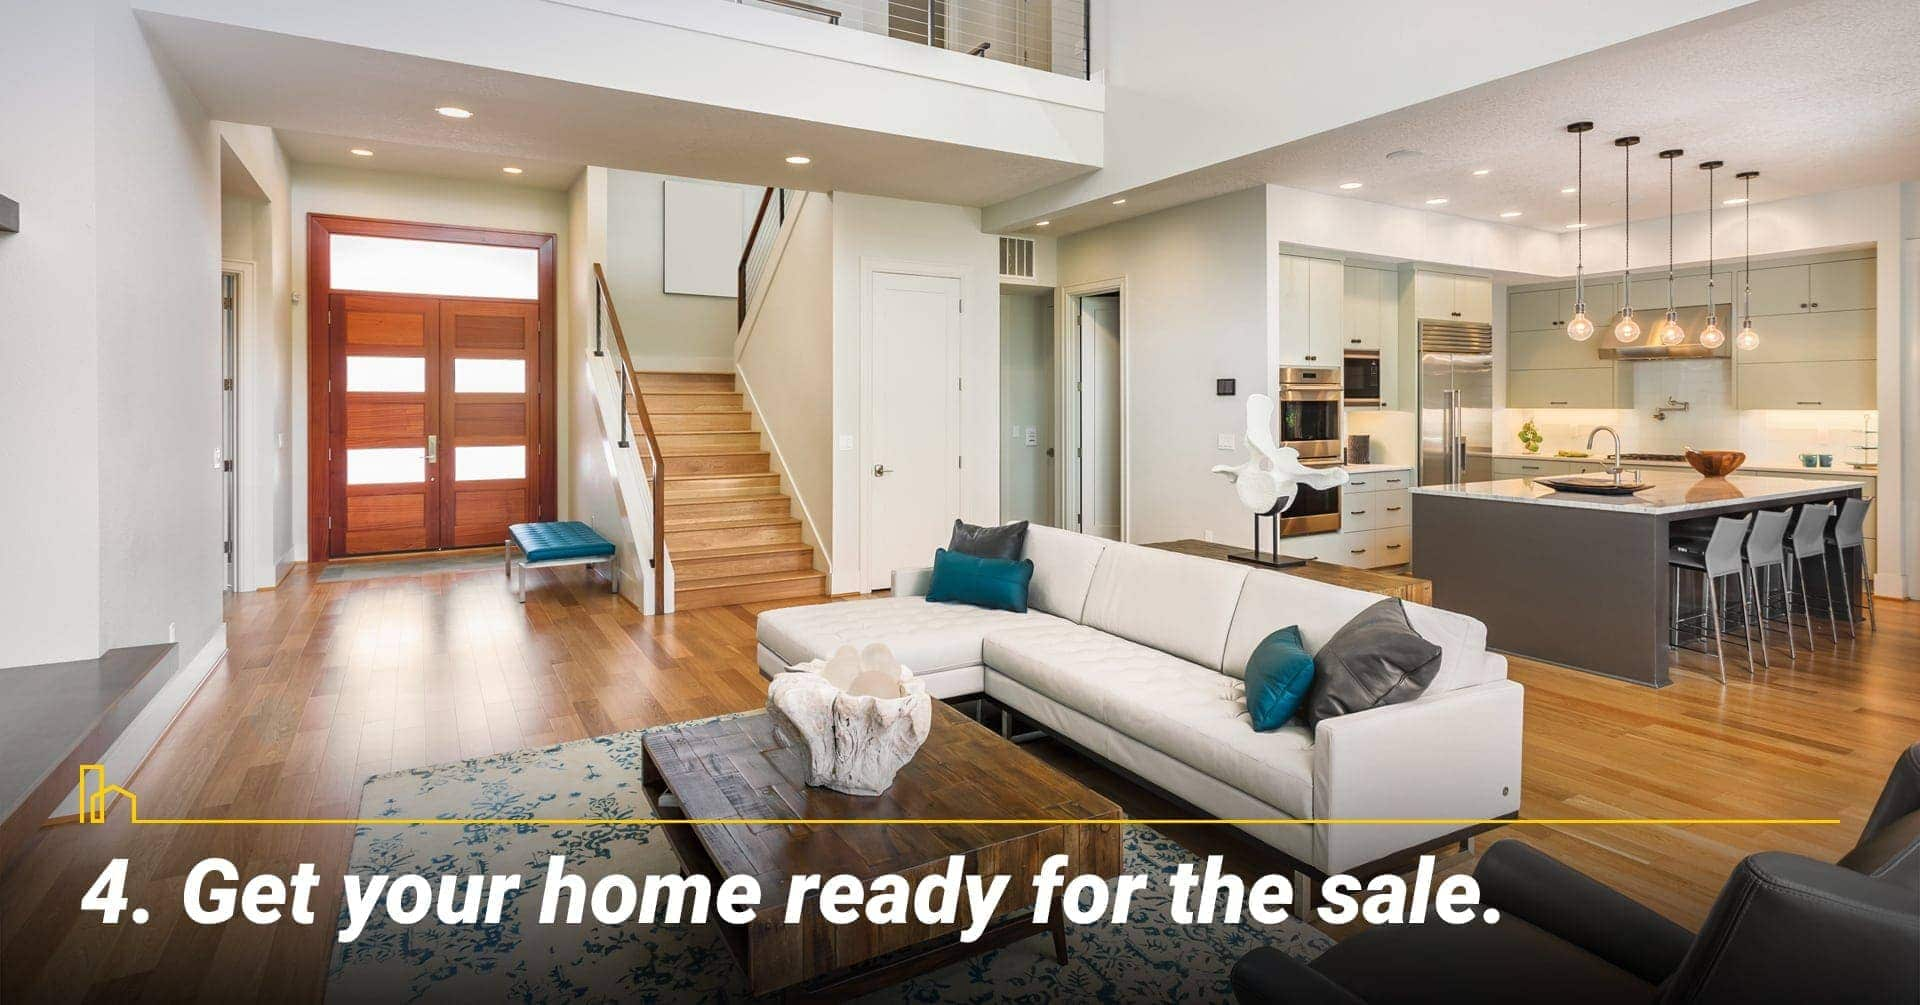 Get your home ready for the sale